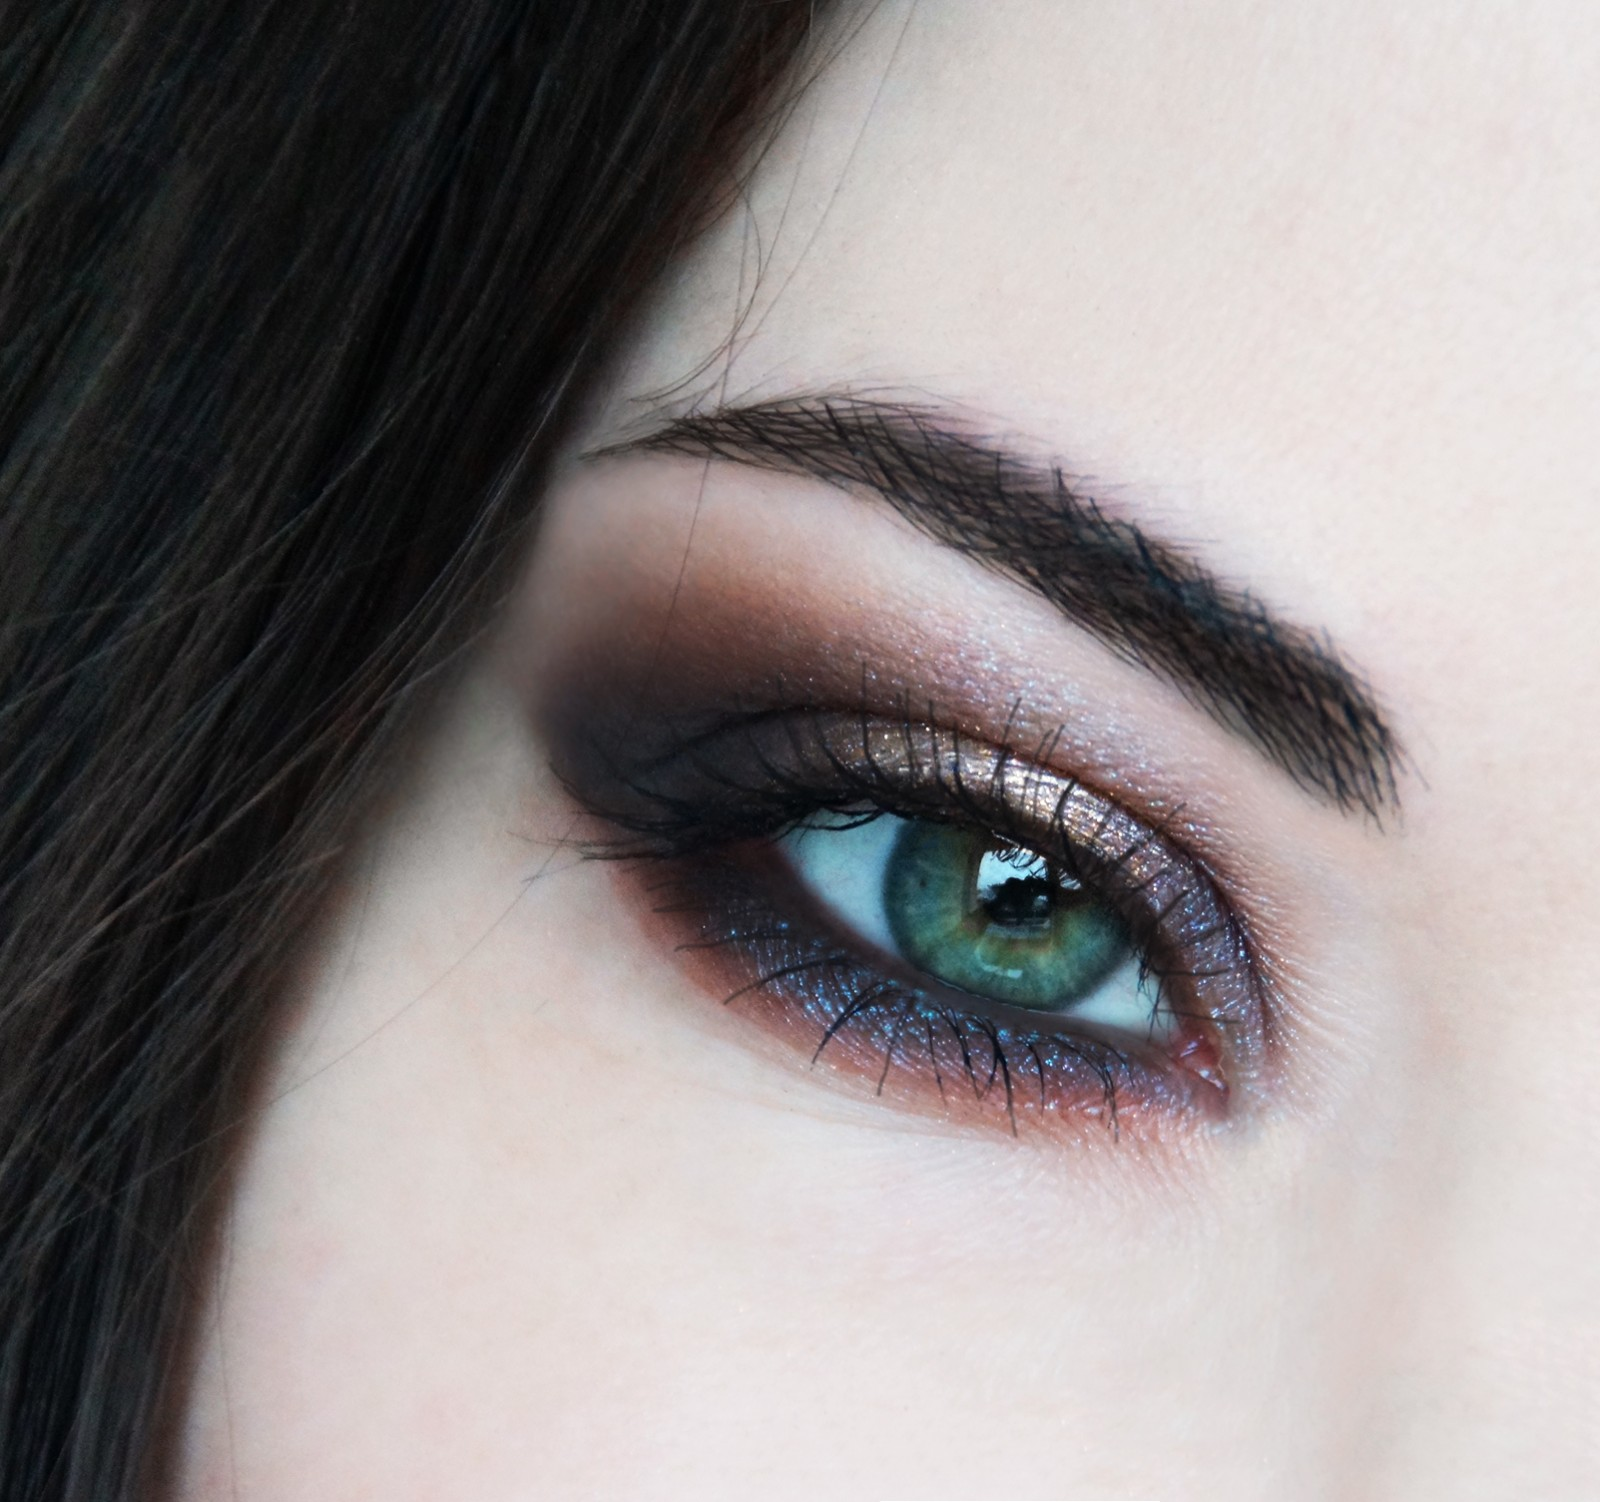 maquillage yeux noel fete